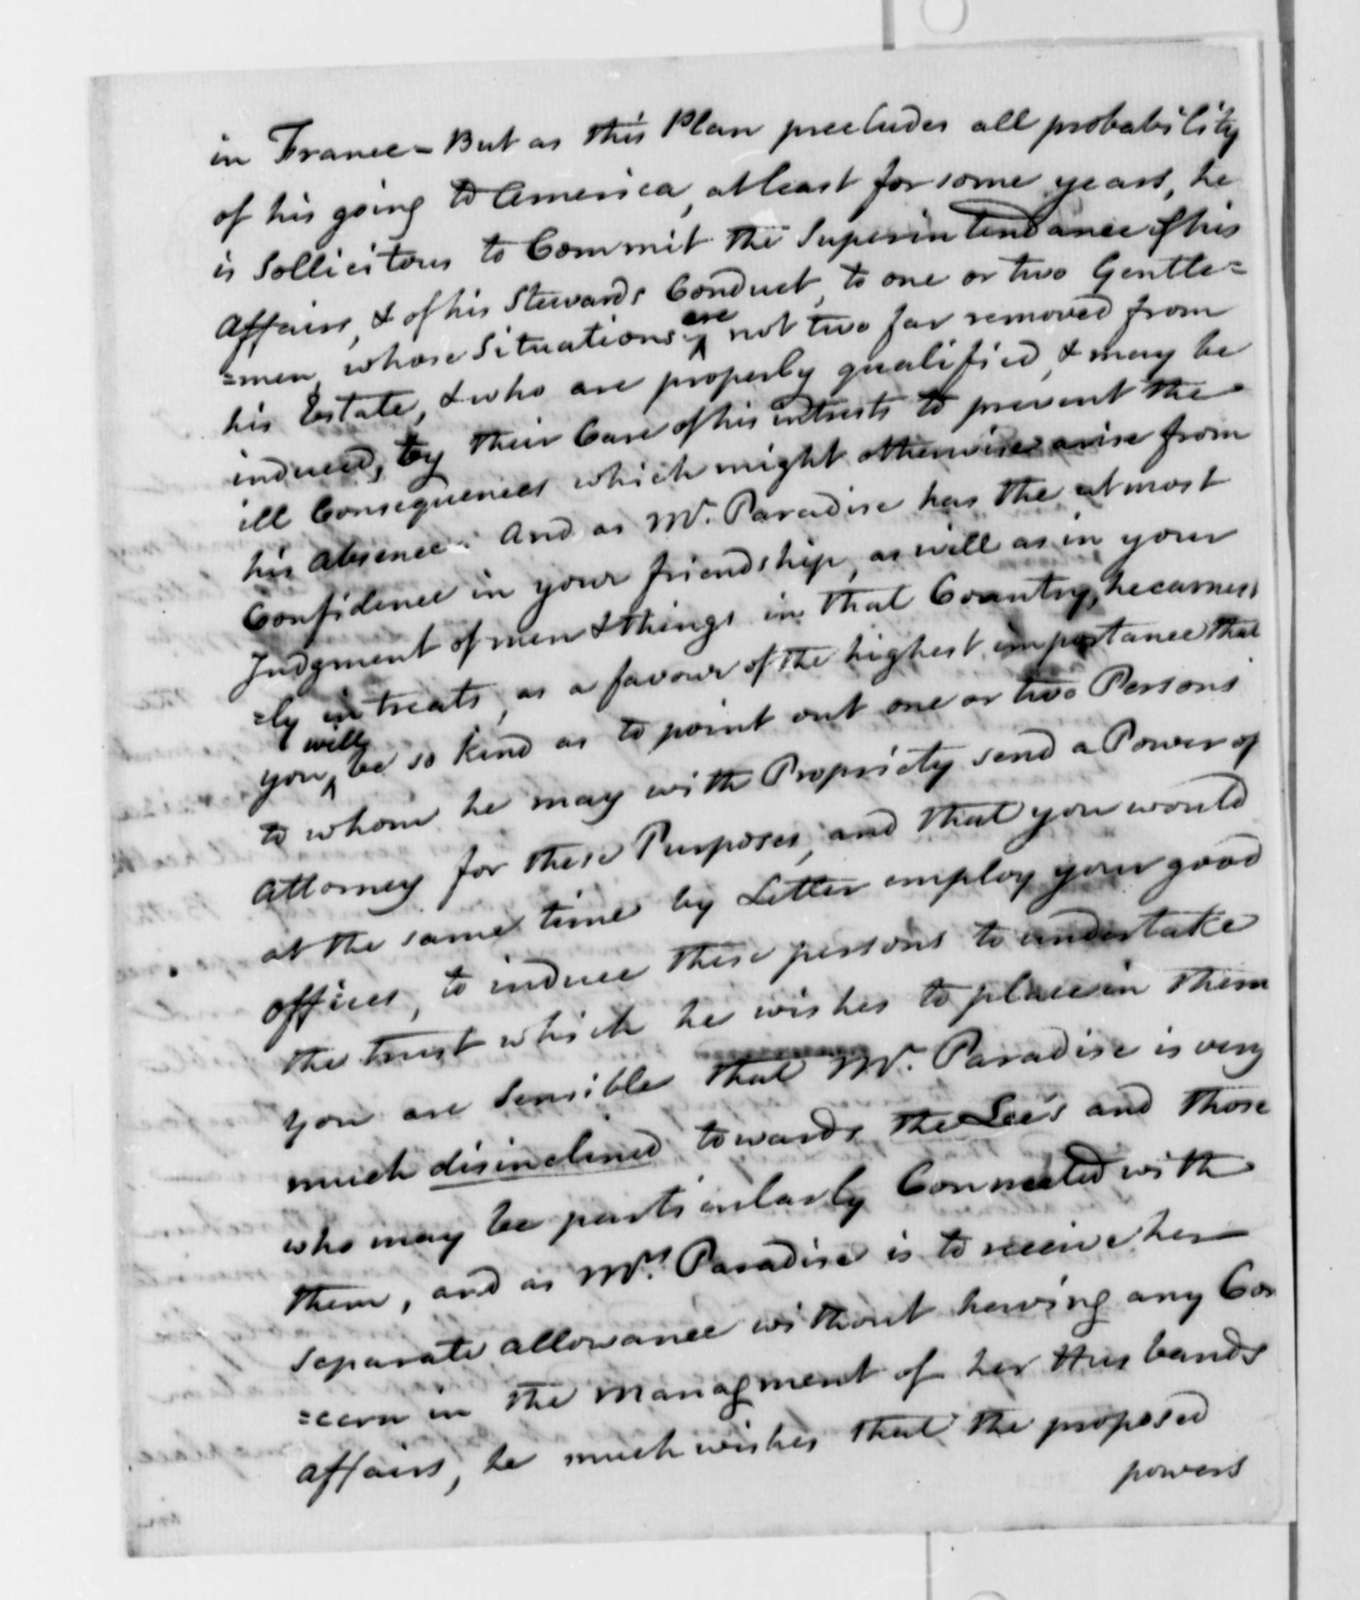 Edward Bancroft to Thomas Jefferson, March 27, 1787